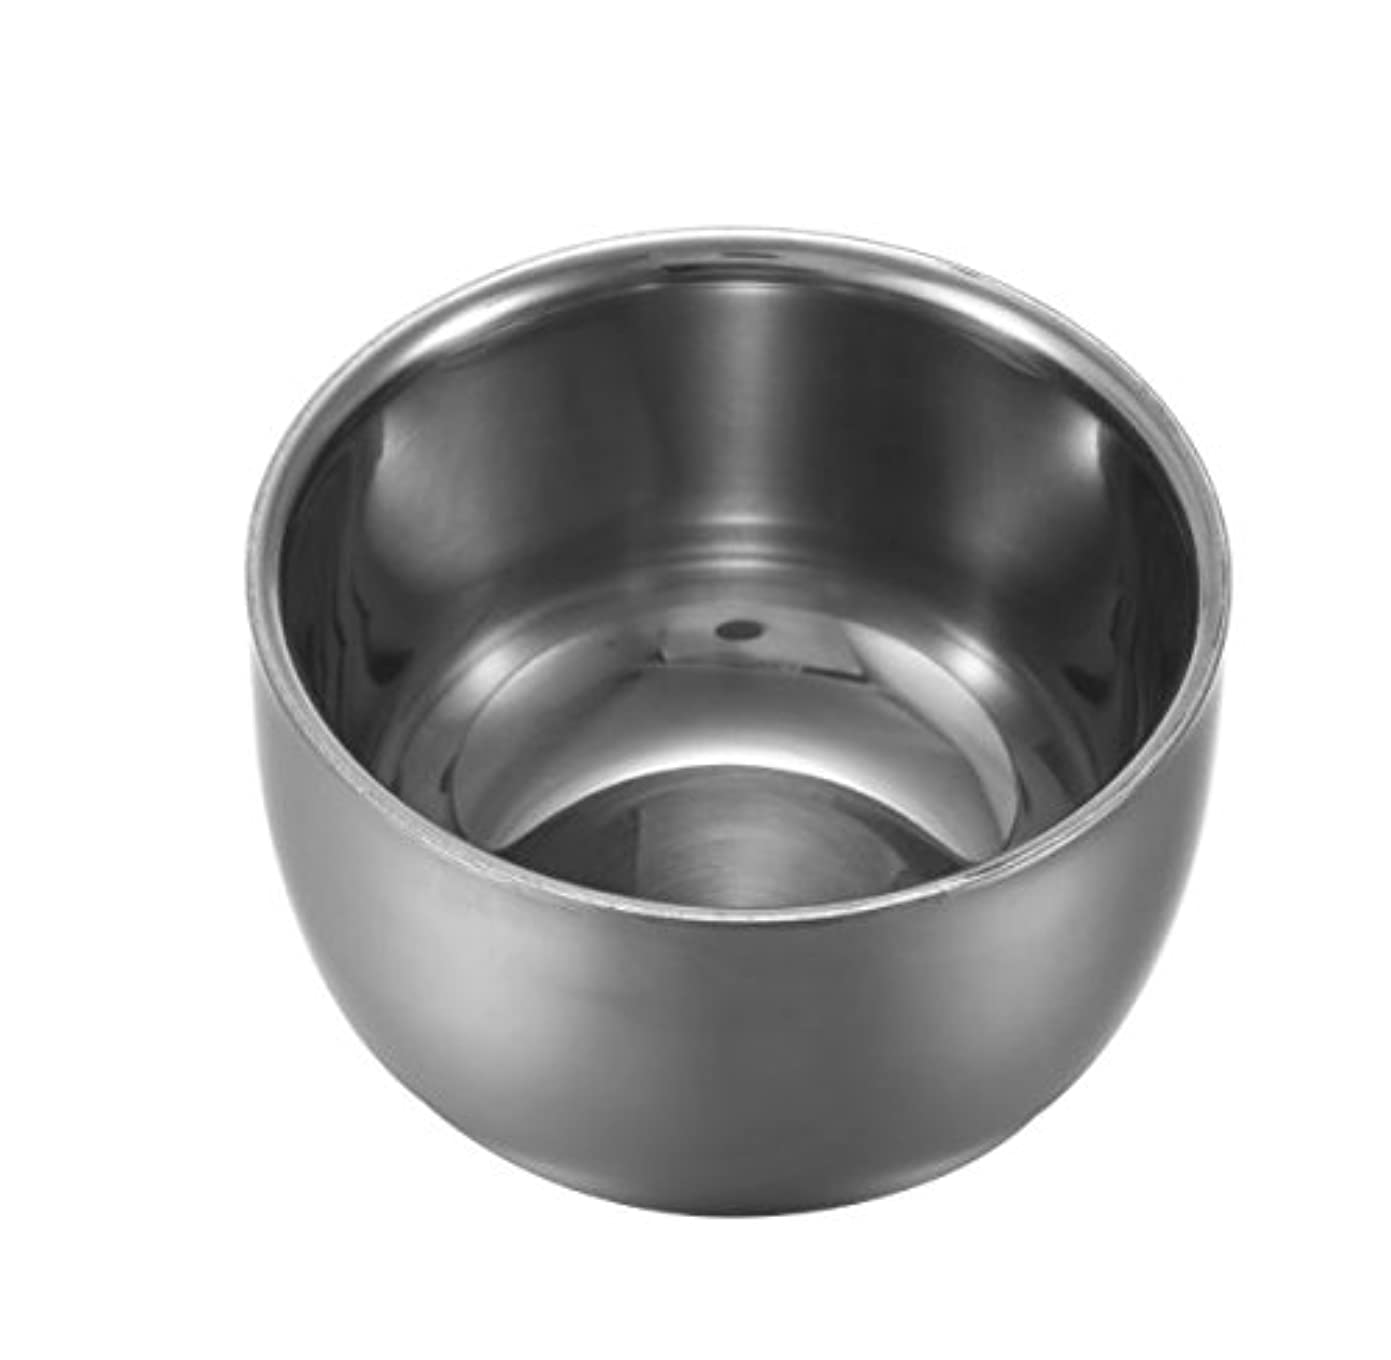 に勝るプレートワイヤー7.5cm Stainless Steel Shaving Bowl Barber Beard Razor Cup For Shave Brush Male Face Cleaning Soap Mug Tool